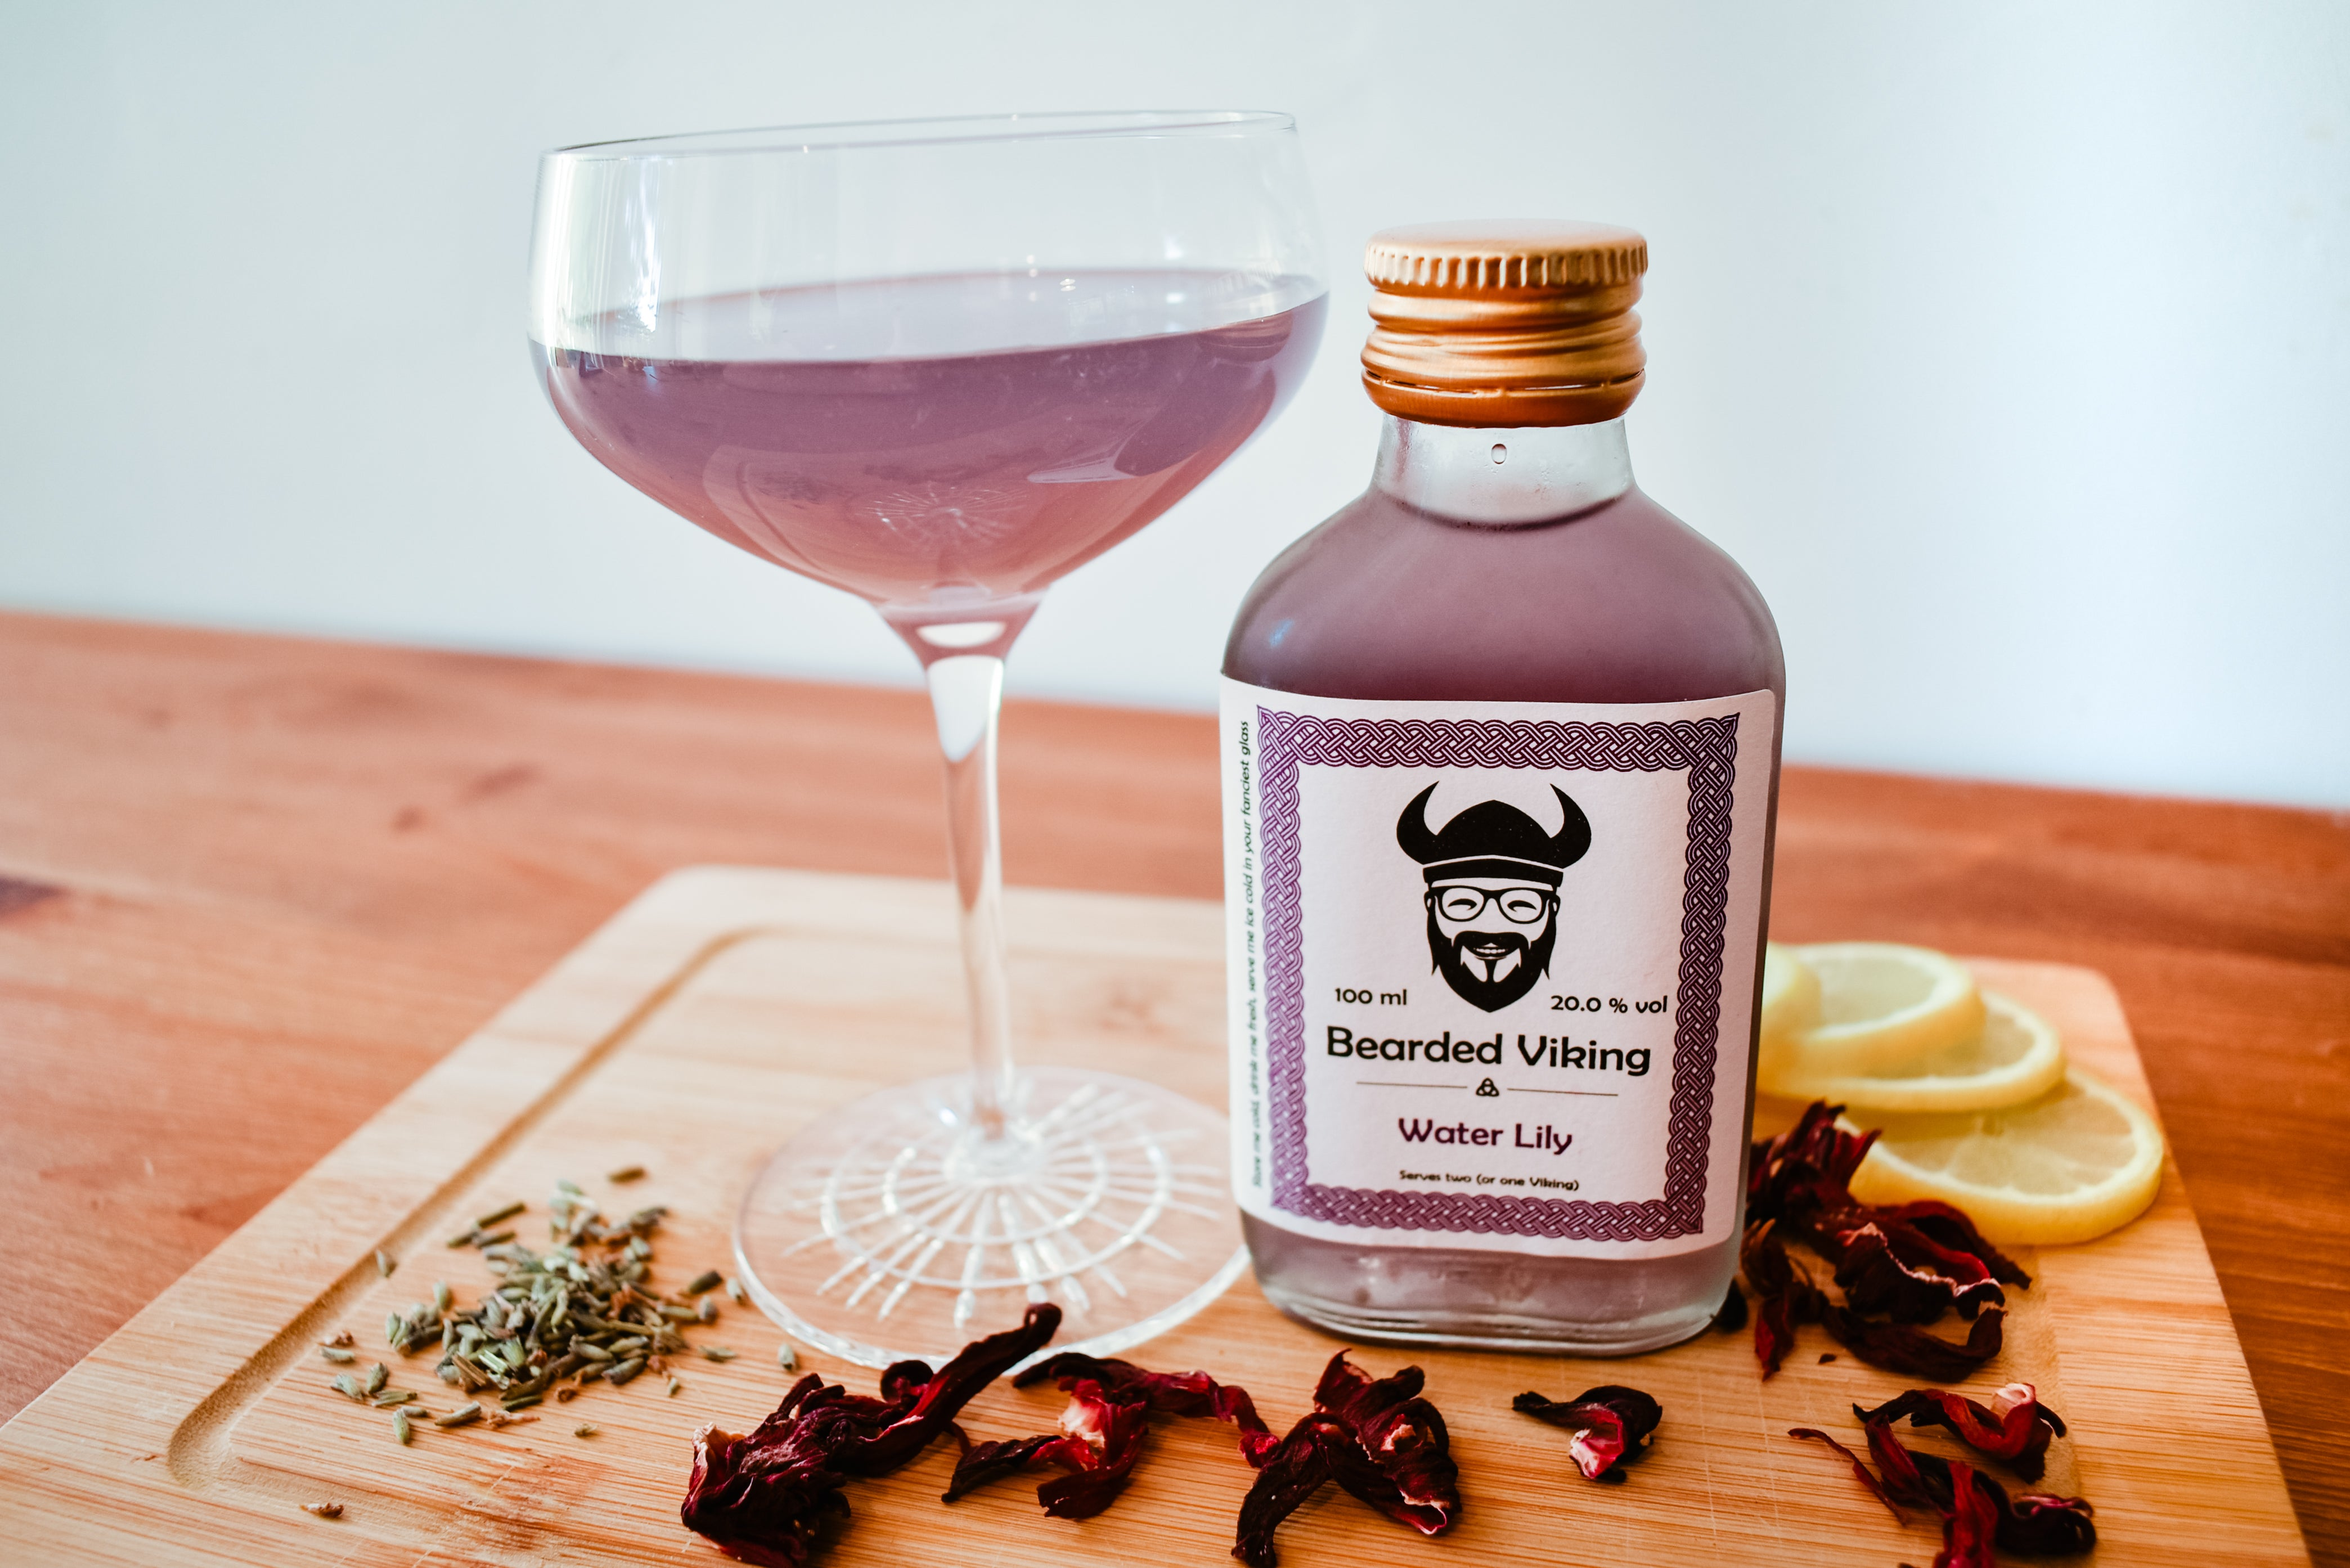 Ready to drink bottled water lily cocktail by Bearded Viking Drinks